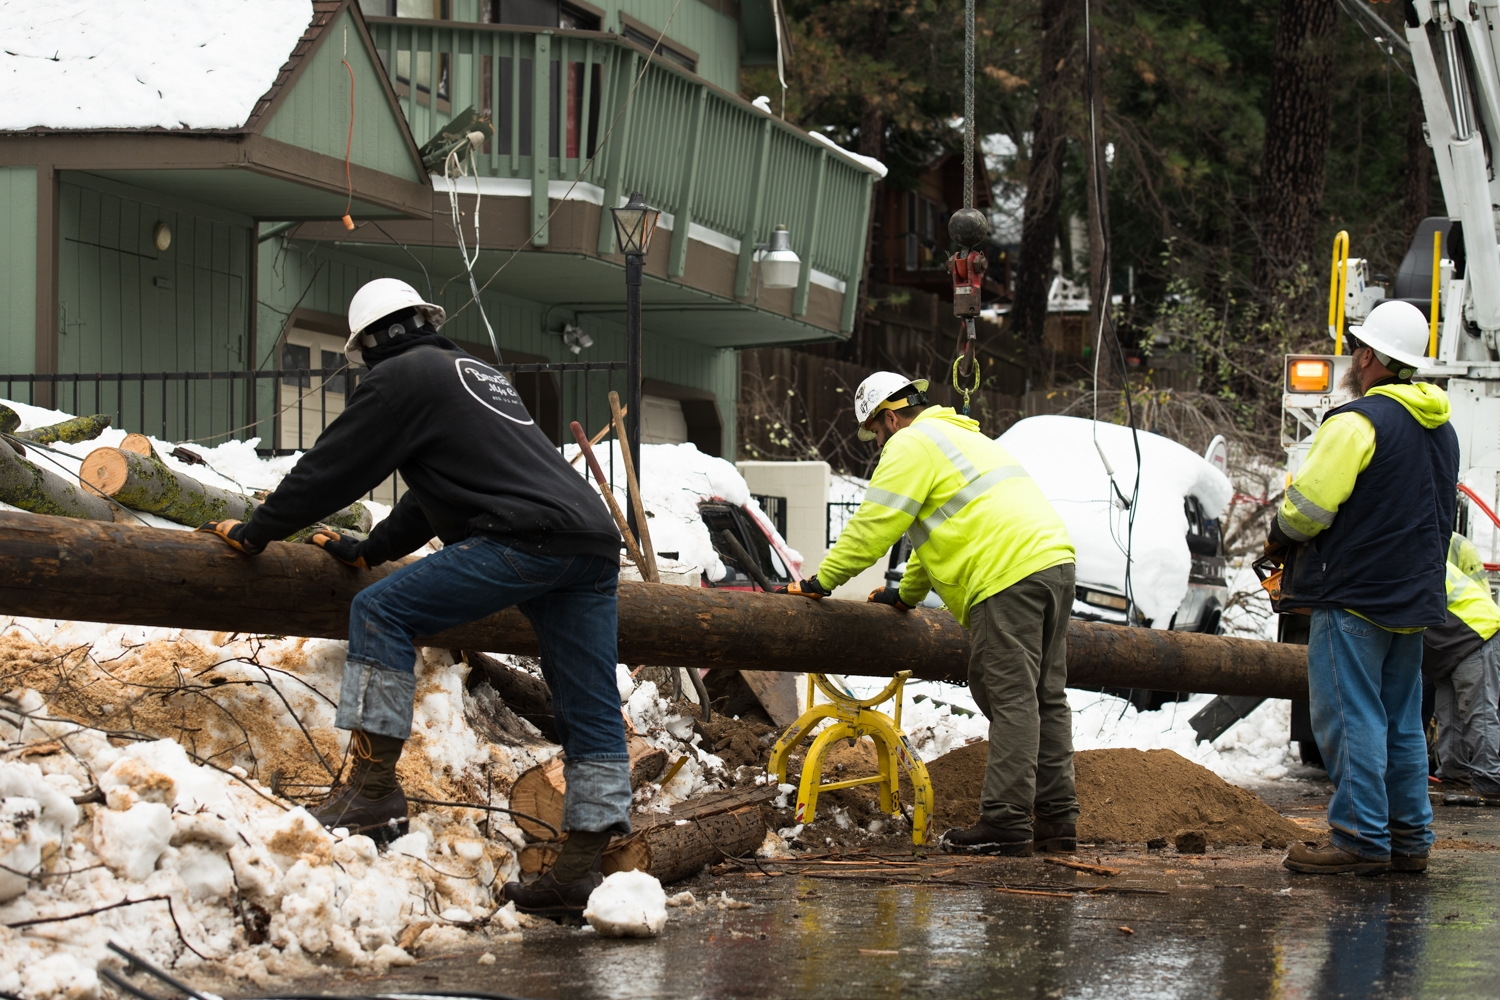 SCE crews prepare to replace a damaged power pole during restoration efforts after the Thanksgiving snowstorm in Lake Arrowhead.